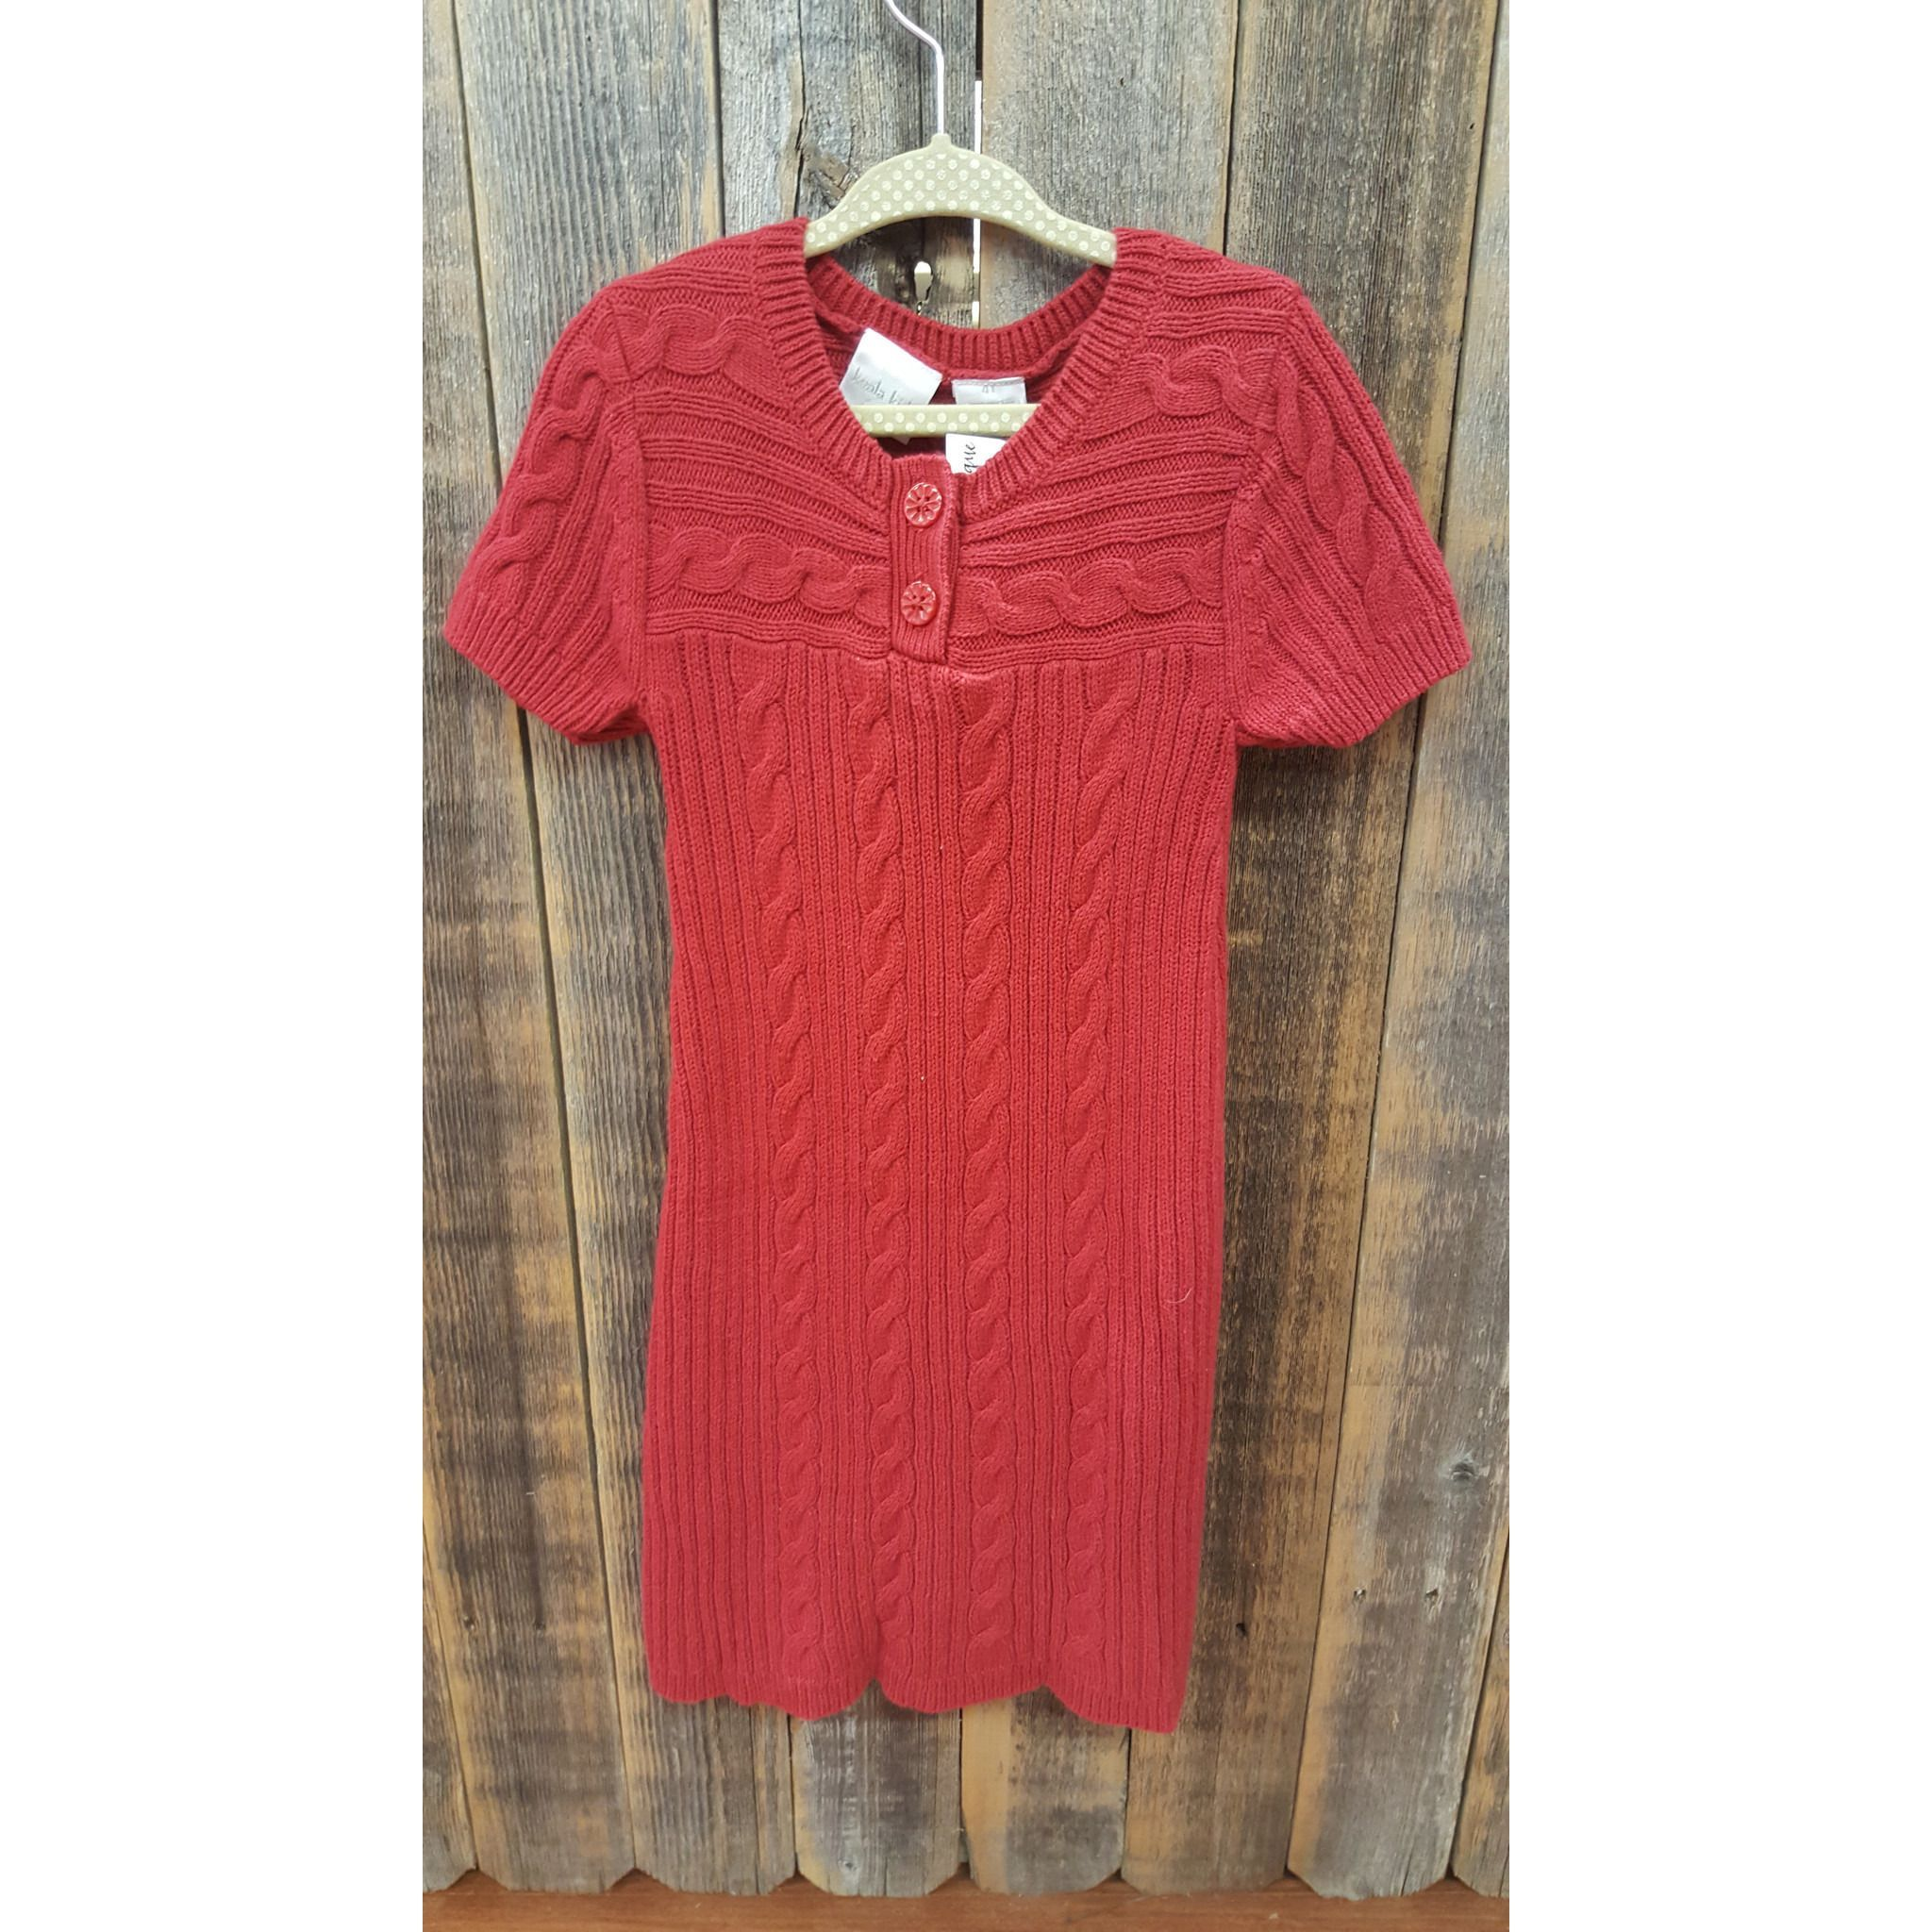 koala kids red sweater dress size 4t | Products | Pinterest | Red ...